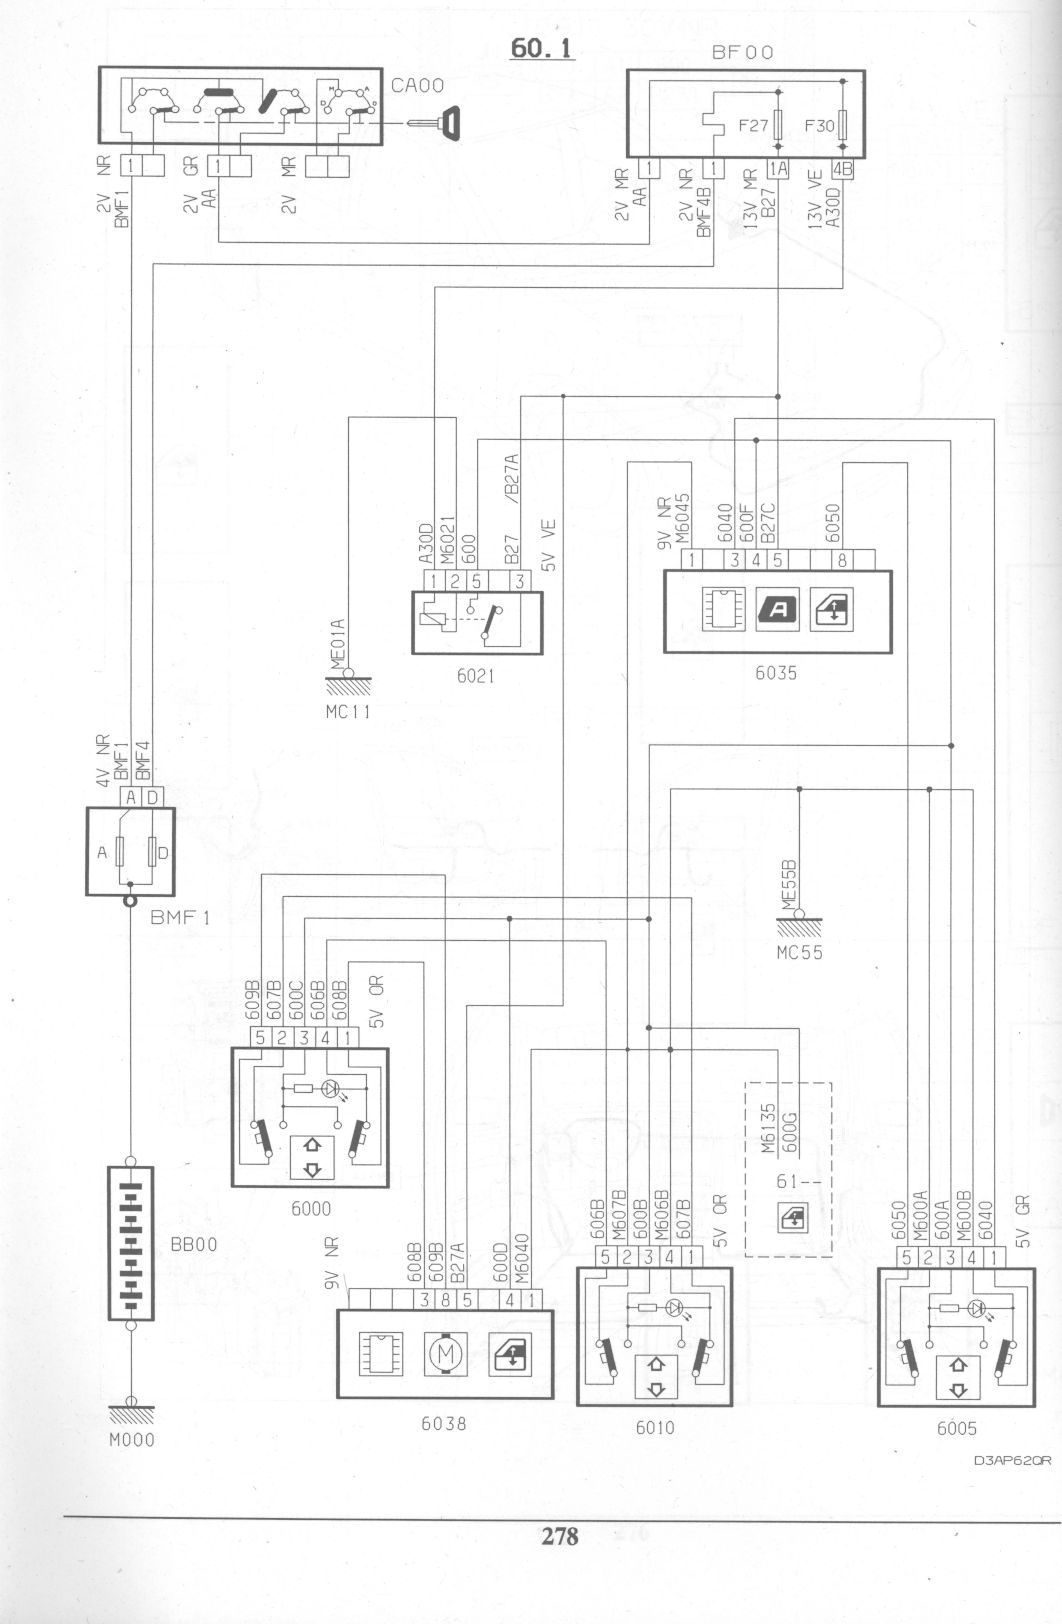 citroen xm v6 wiring diagram